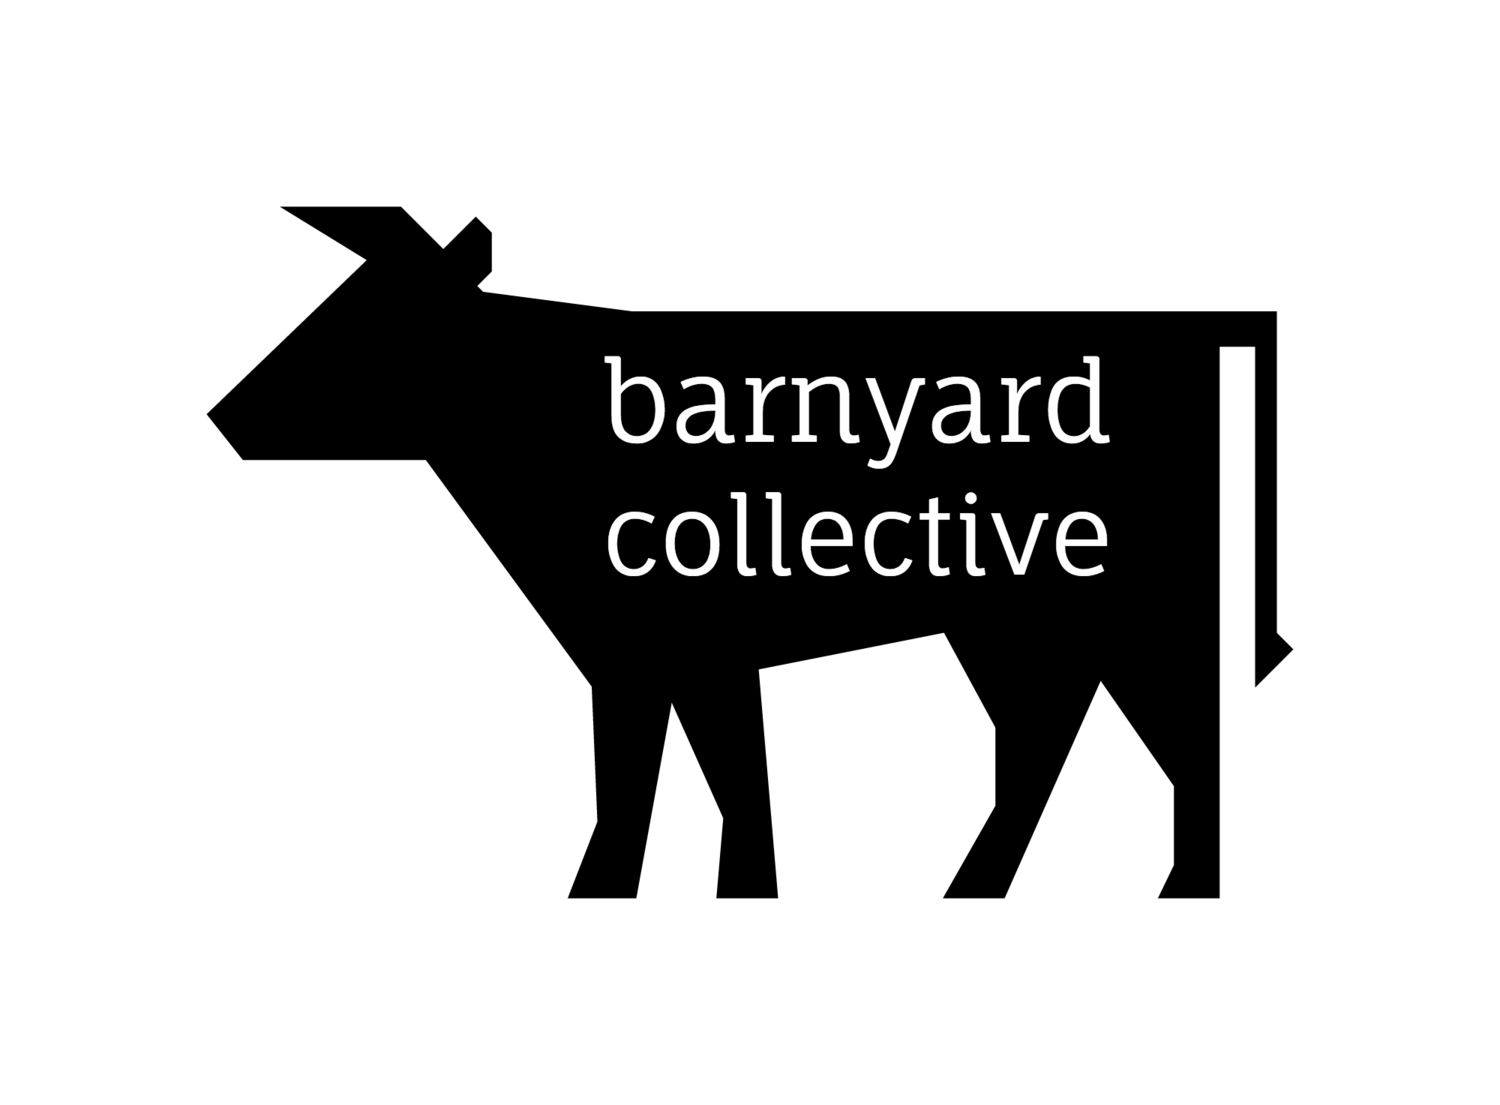 Barnyard Collective